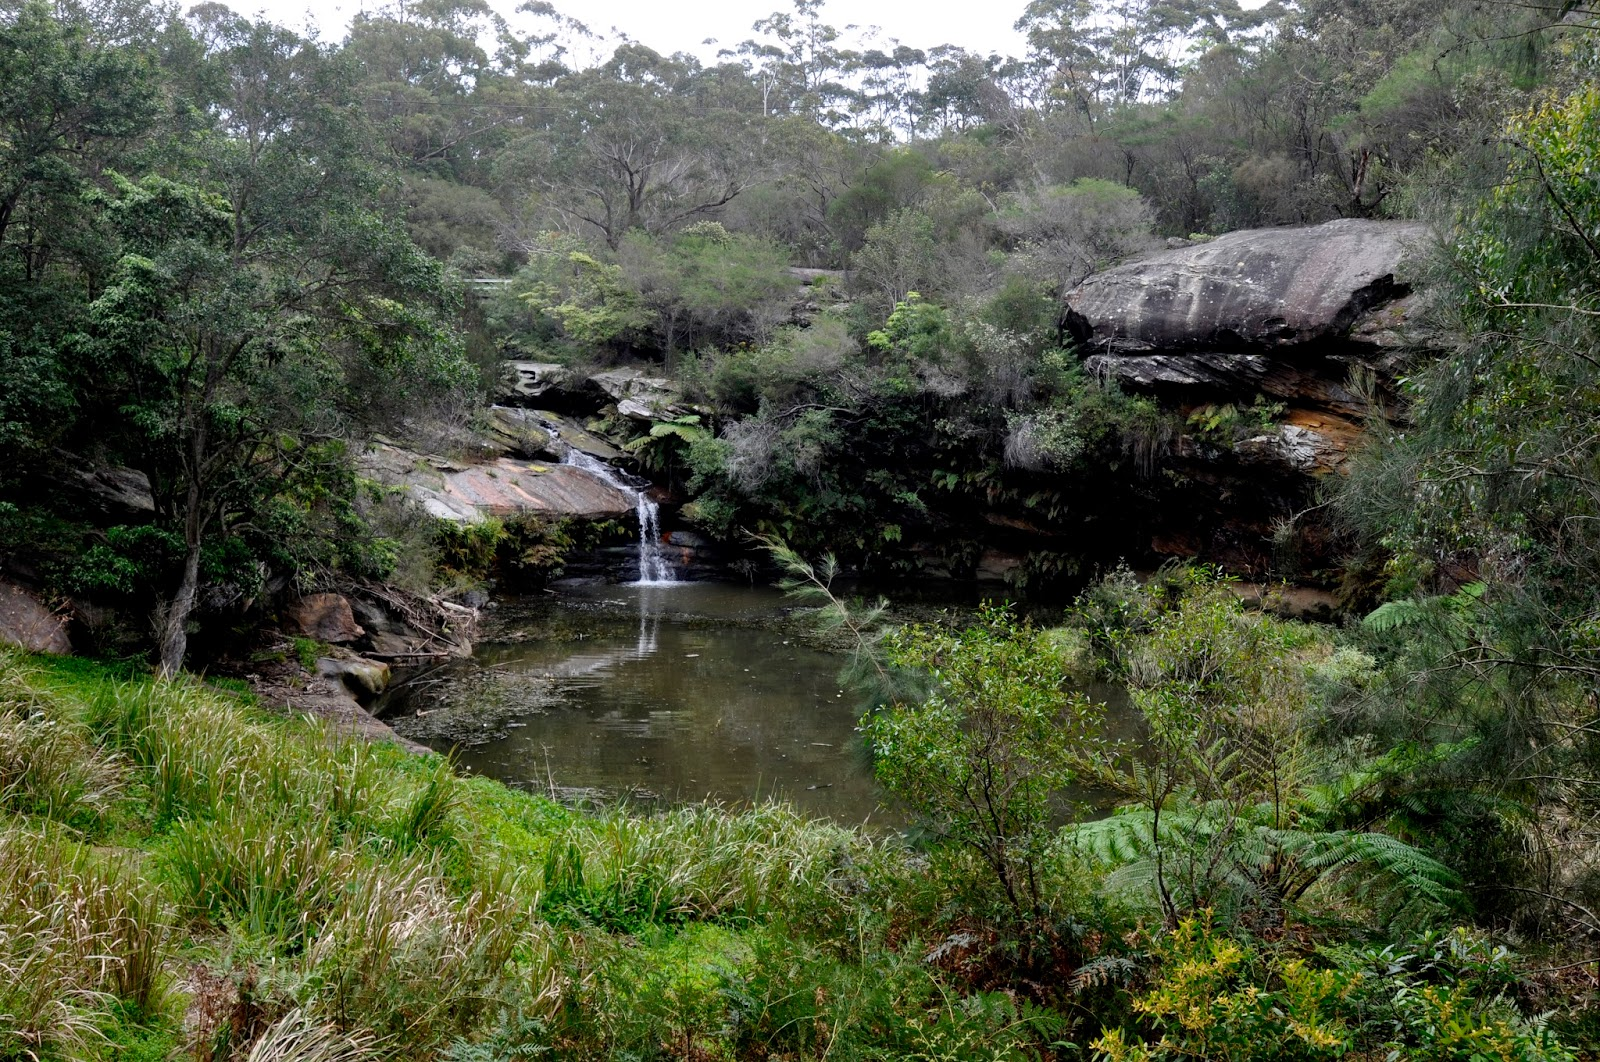 Image credit: http://thegreenmanly.blogspot.com.au/2014/03/a-vision-splendid-for-manly-creek.html